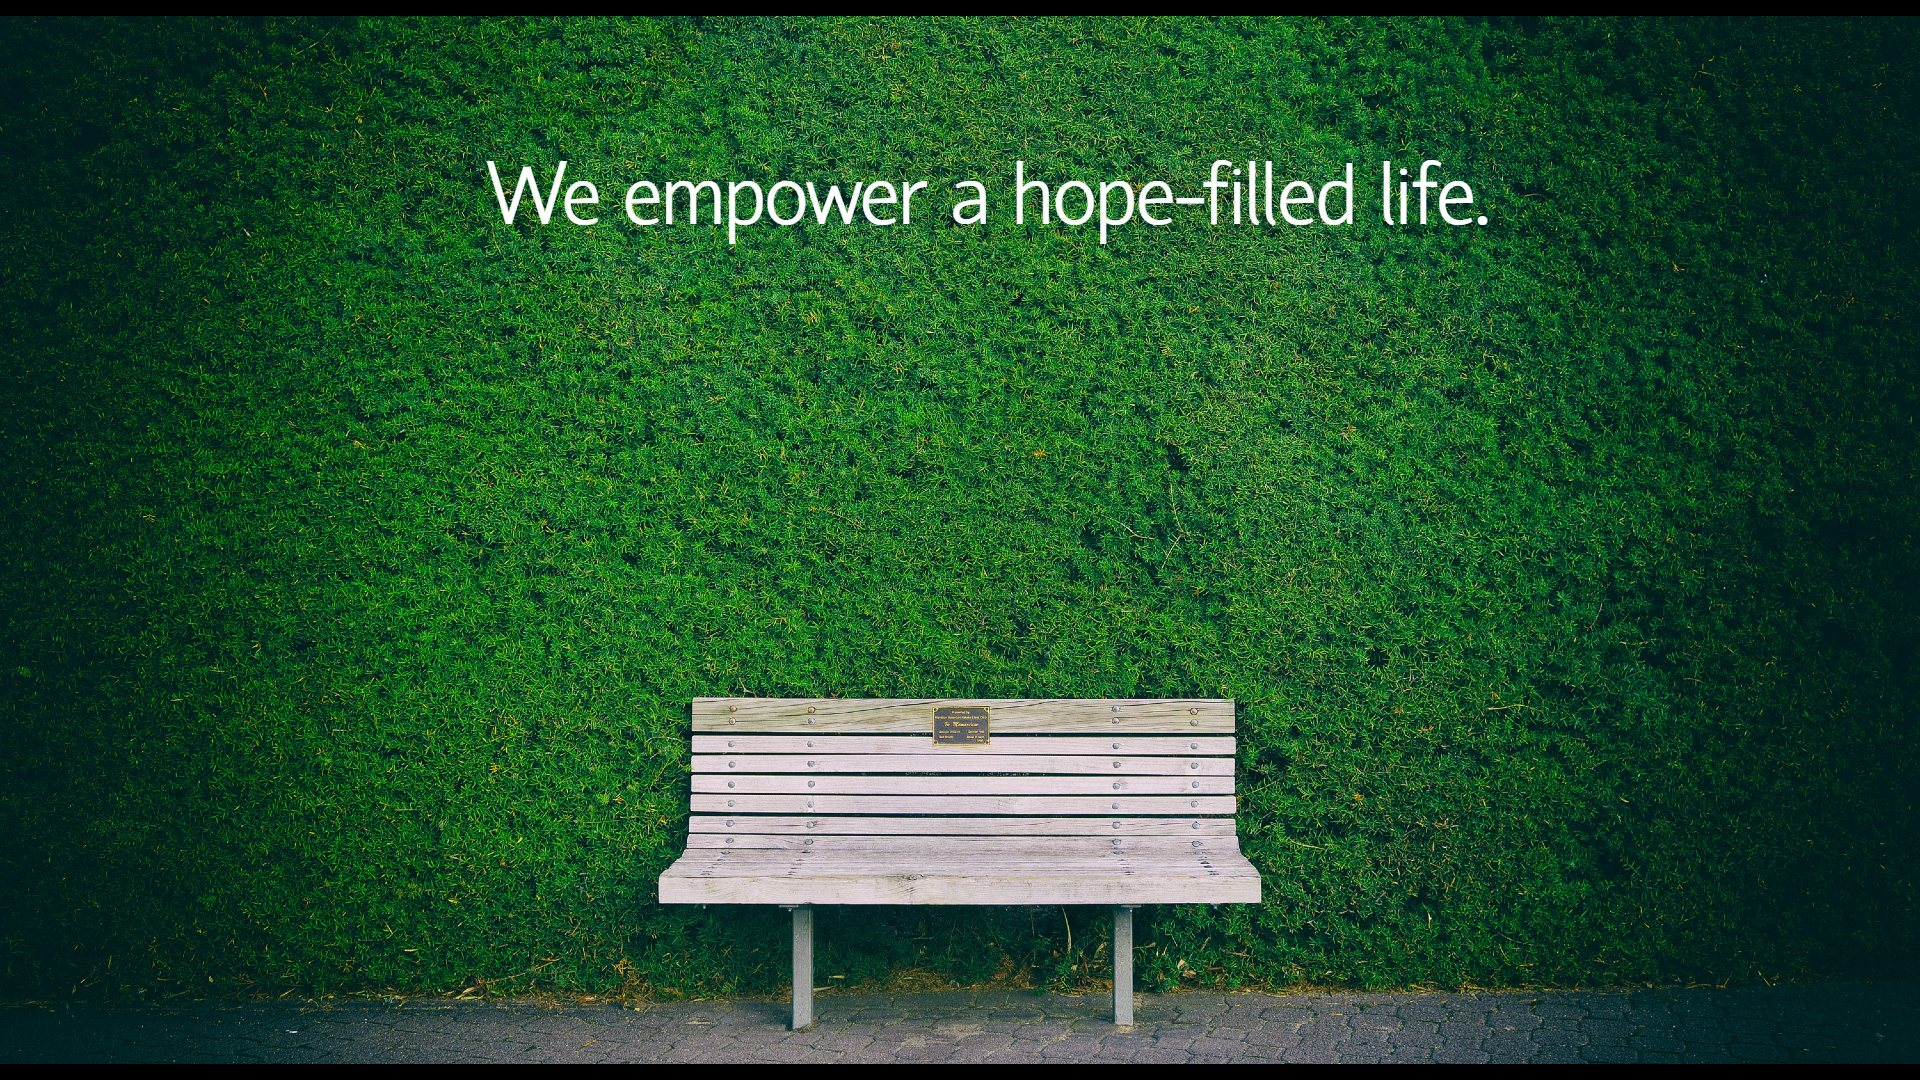 Hope filled life